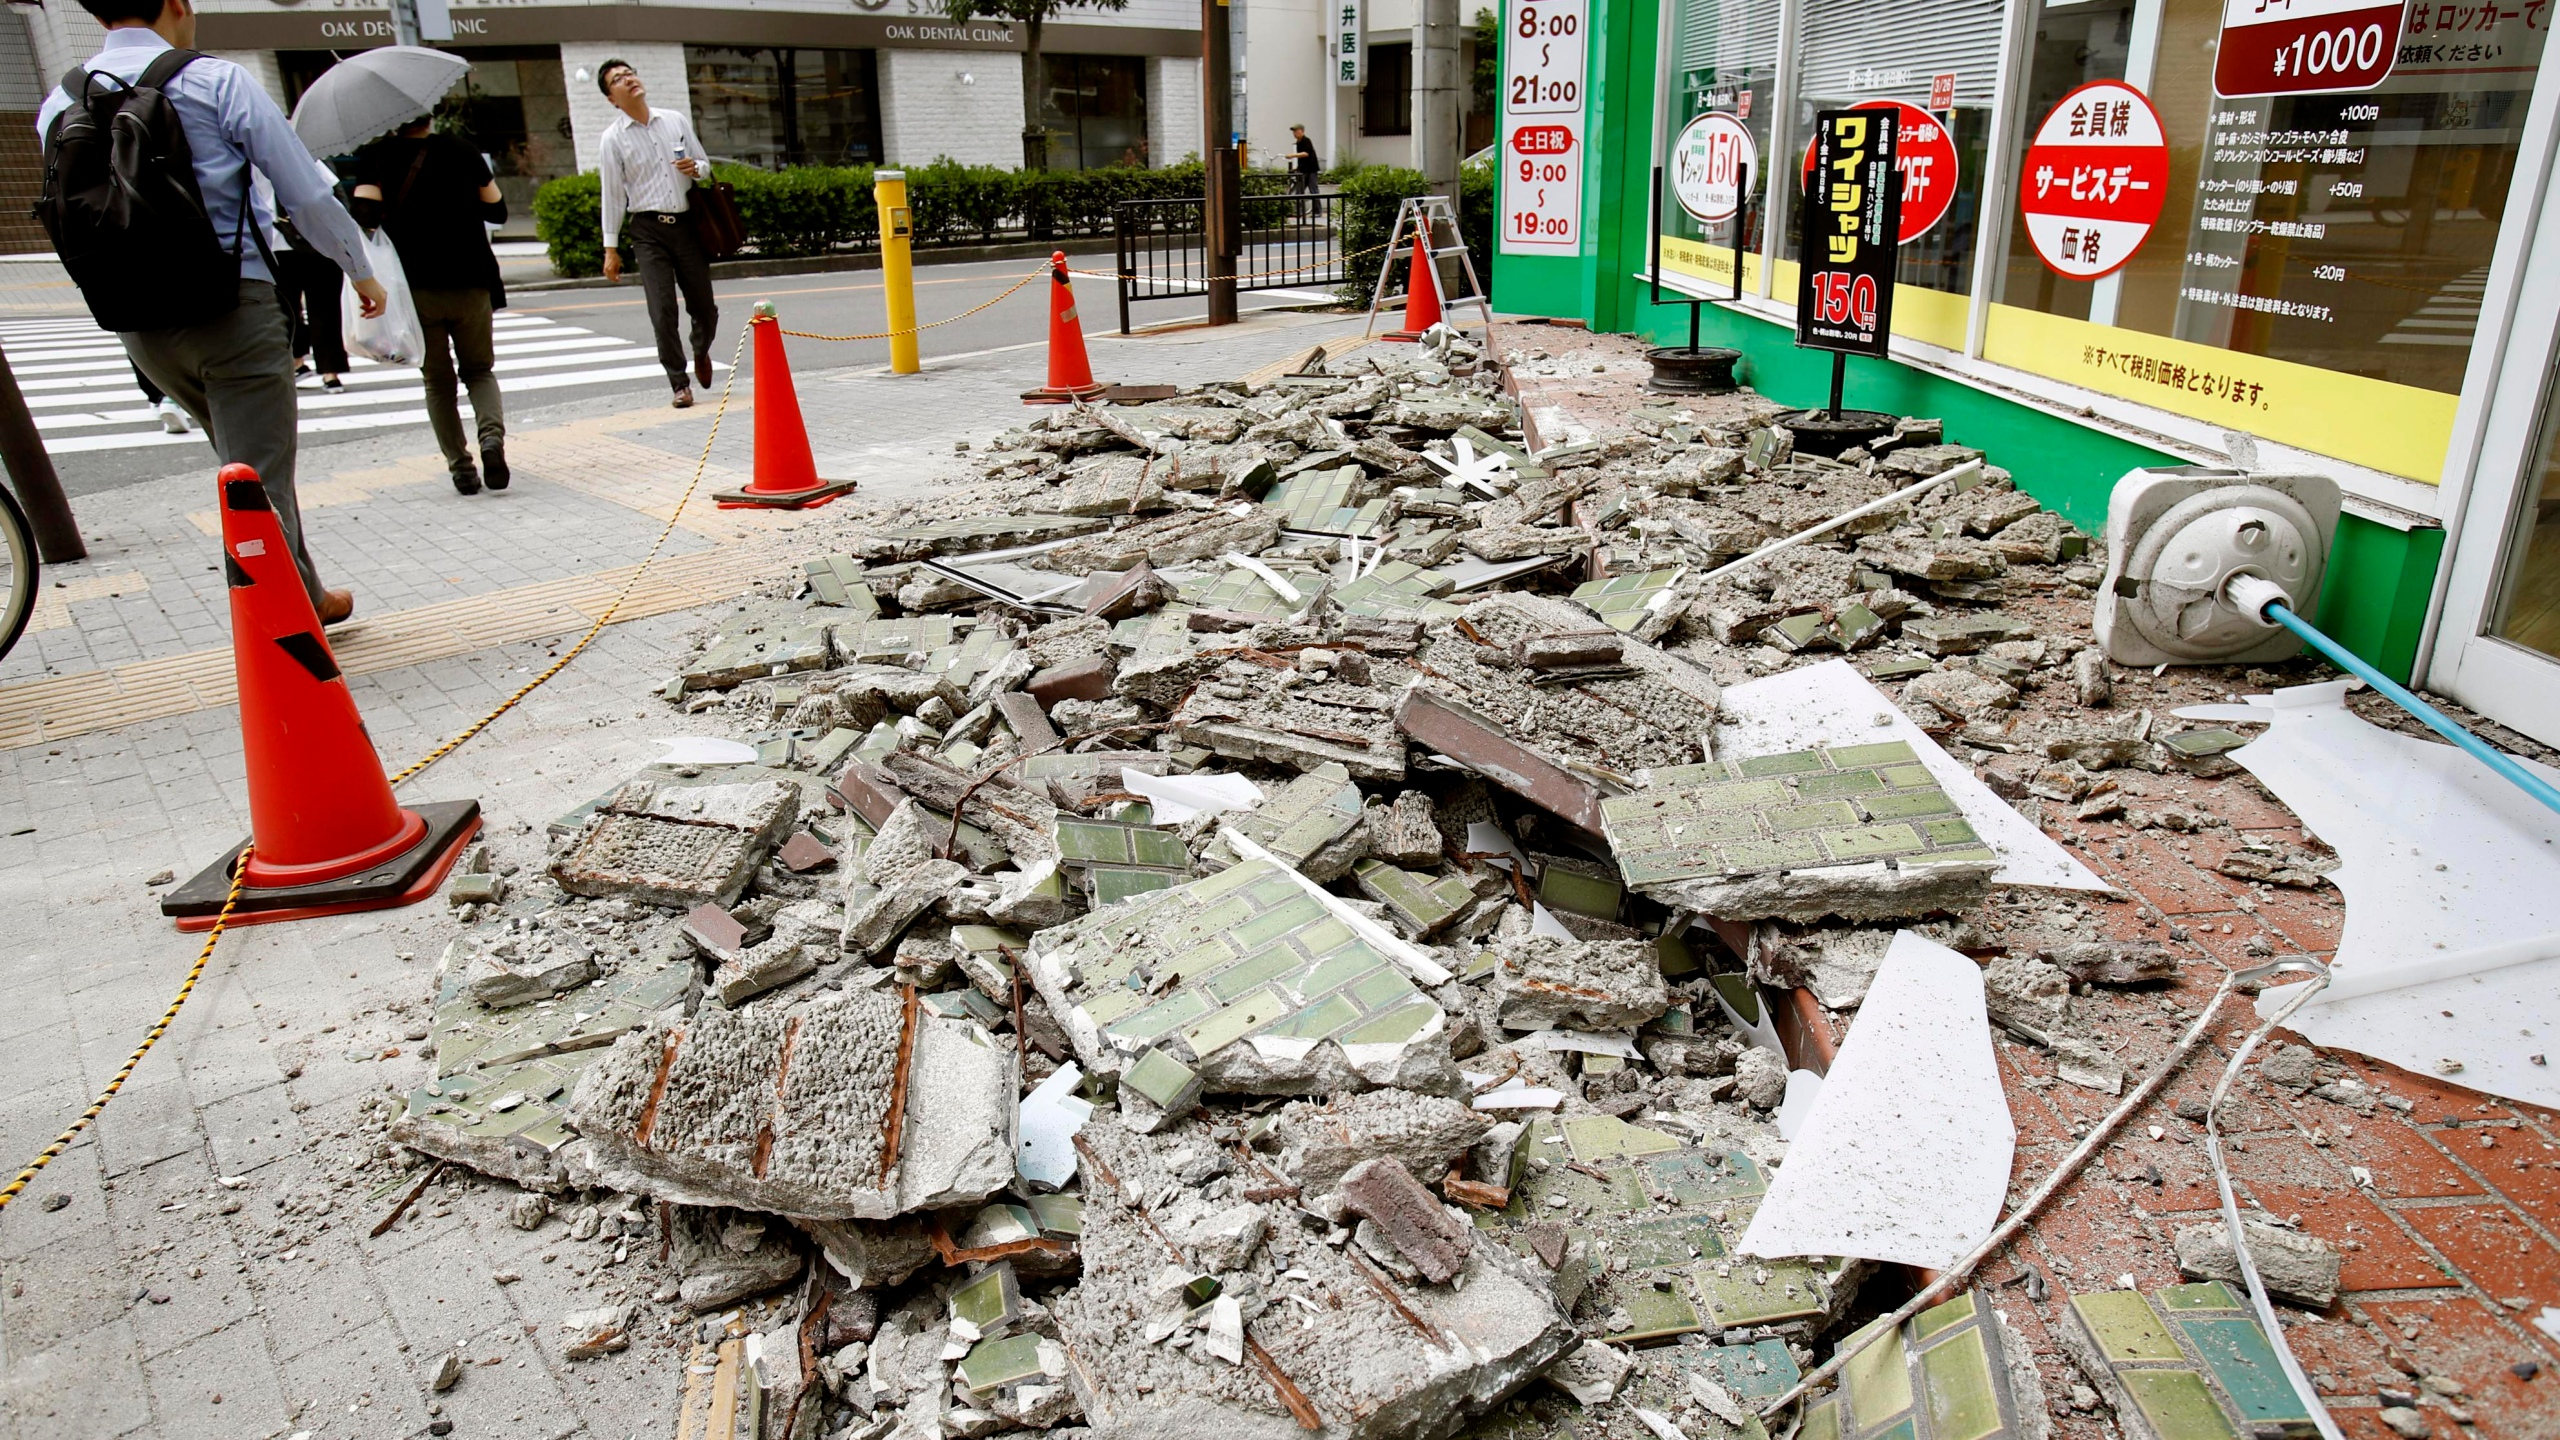 APTOPIX_Japan_Earthquake_21634-159532.jpg51011209